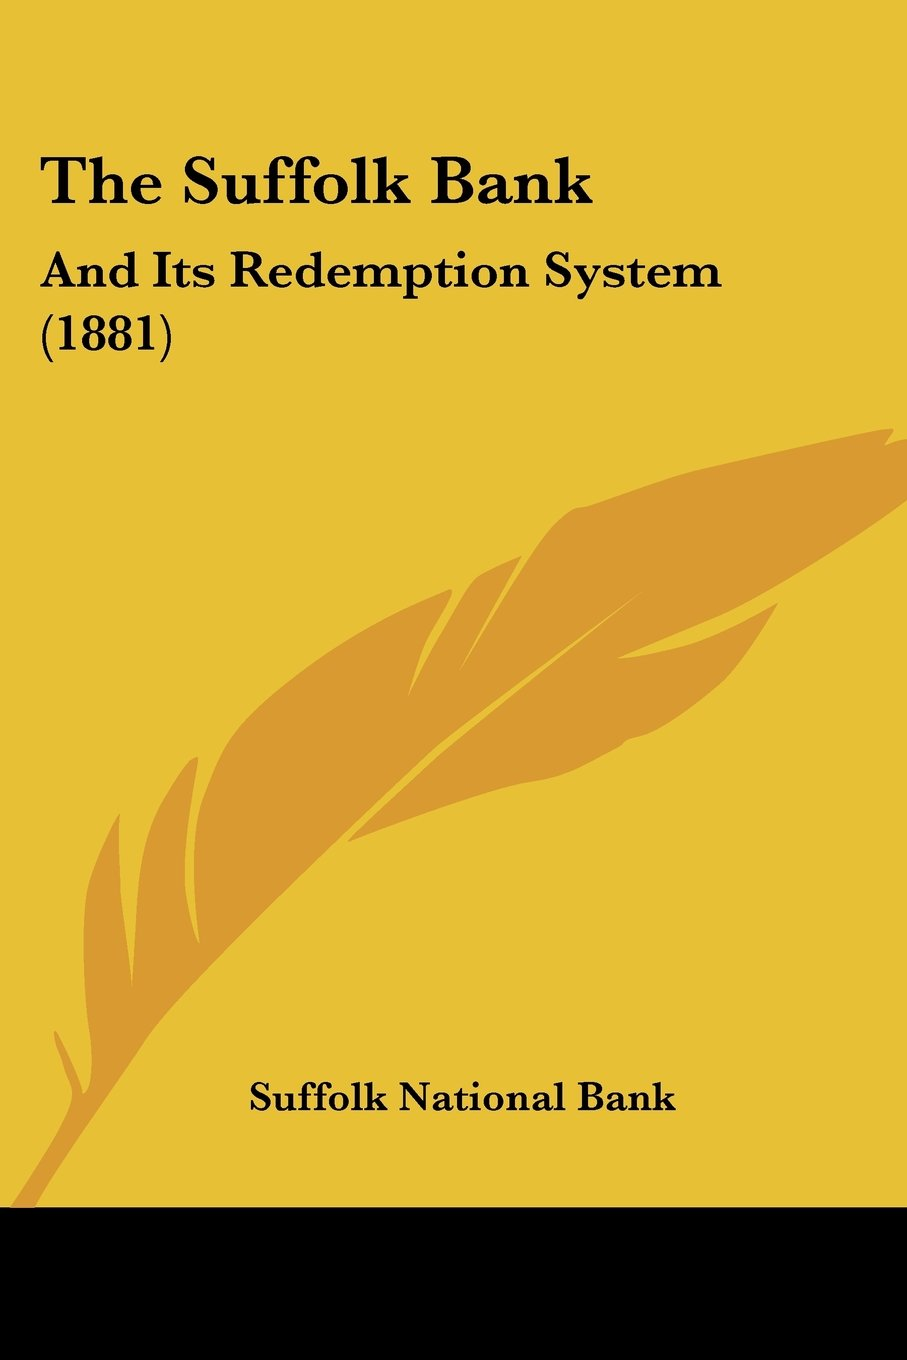 The Suffolk Bank: And Its Redemption System (1881) PDF